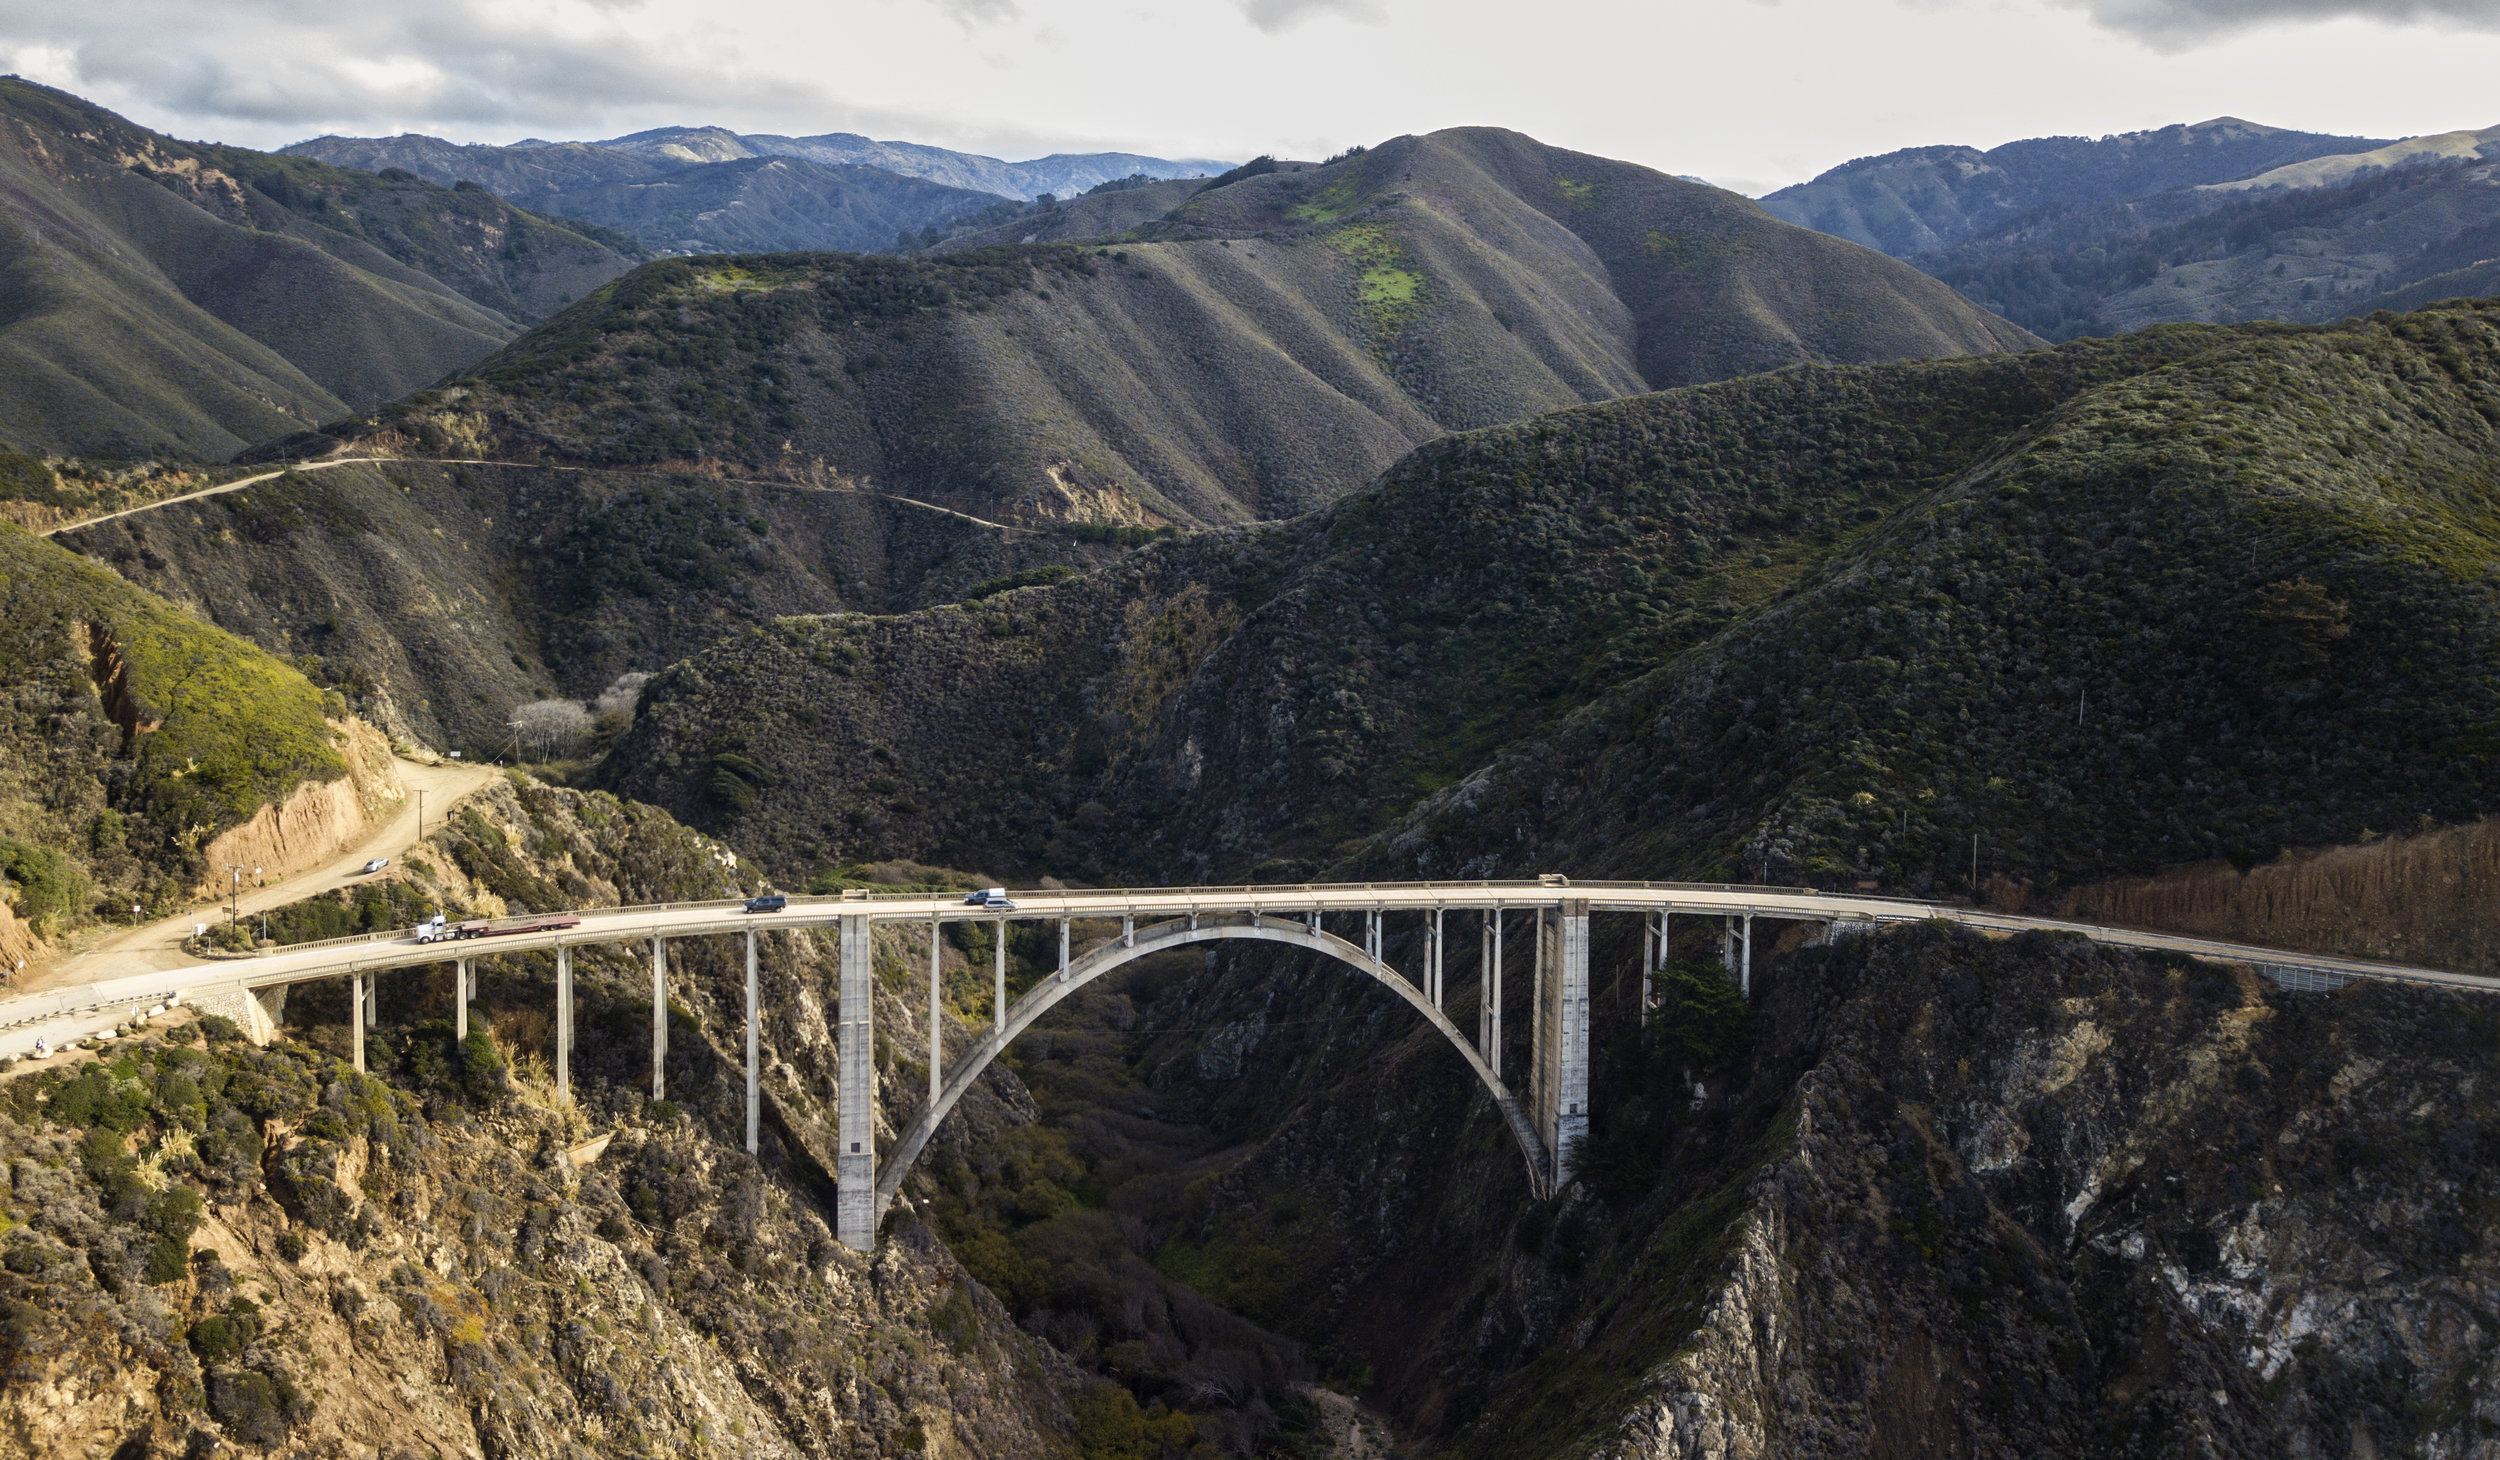 bixby-bridge-DJI_0202-cropped.jpg